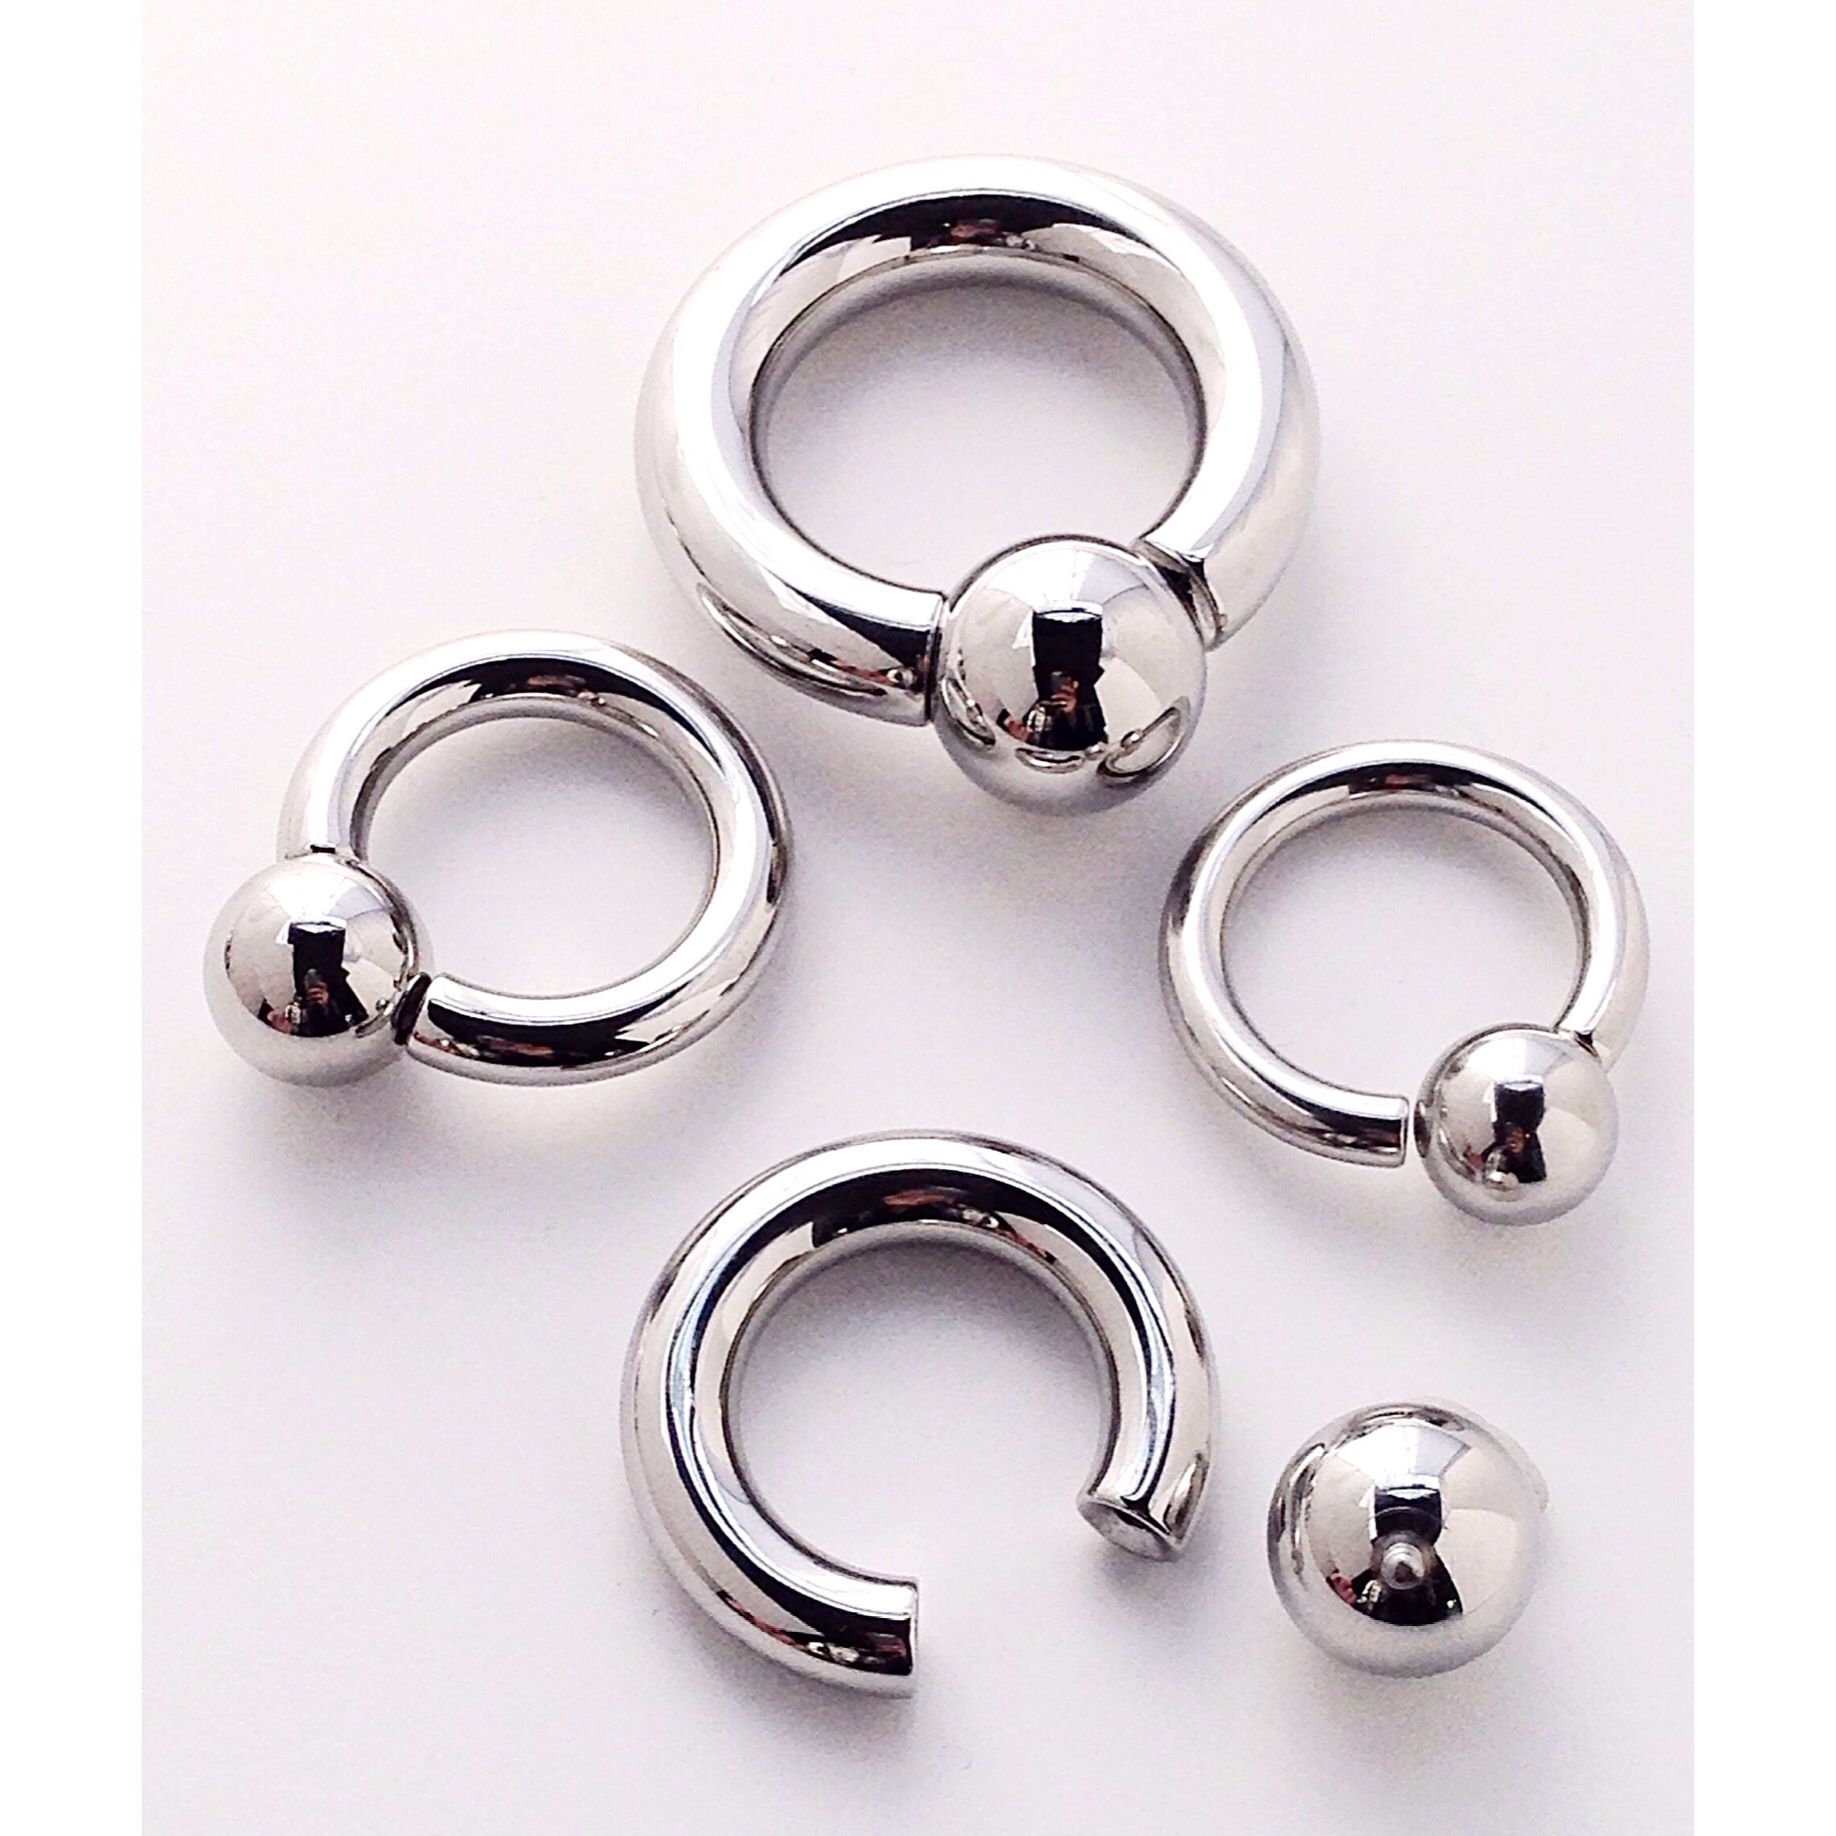 Screw on ball rings great for PA piercings   Jewelry